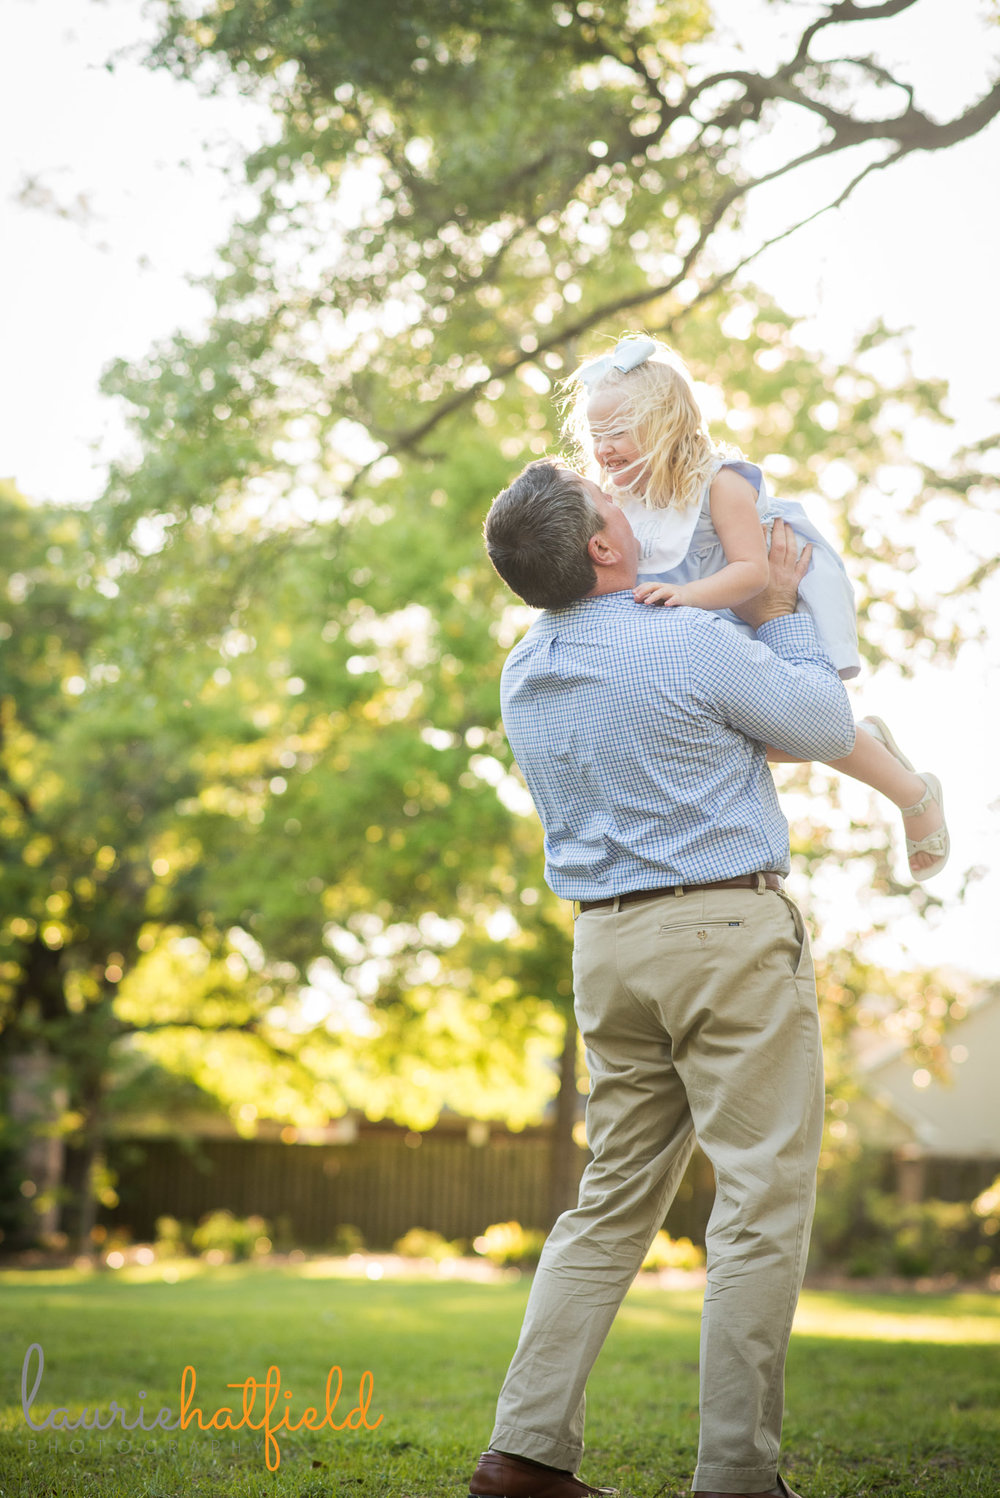 dad twirling little girl in air | Mobile AL family photographer | Laurie Hatfield Photography